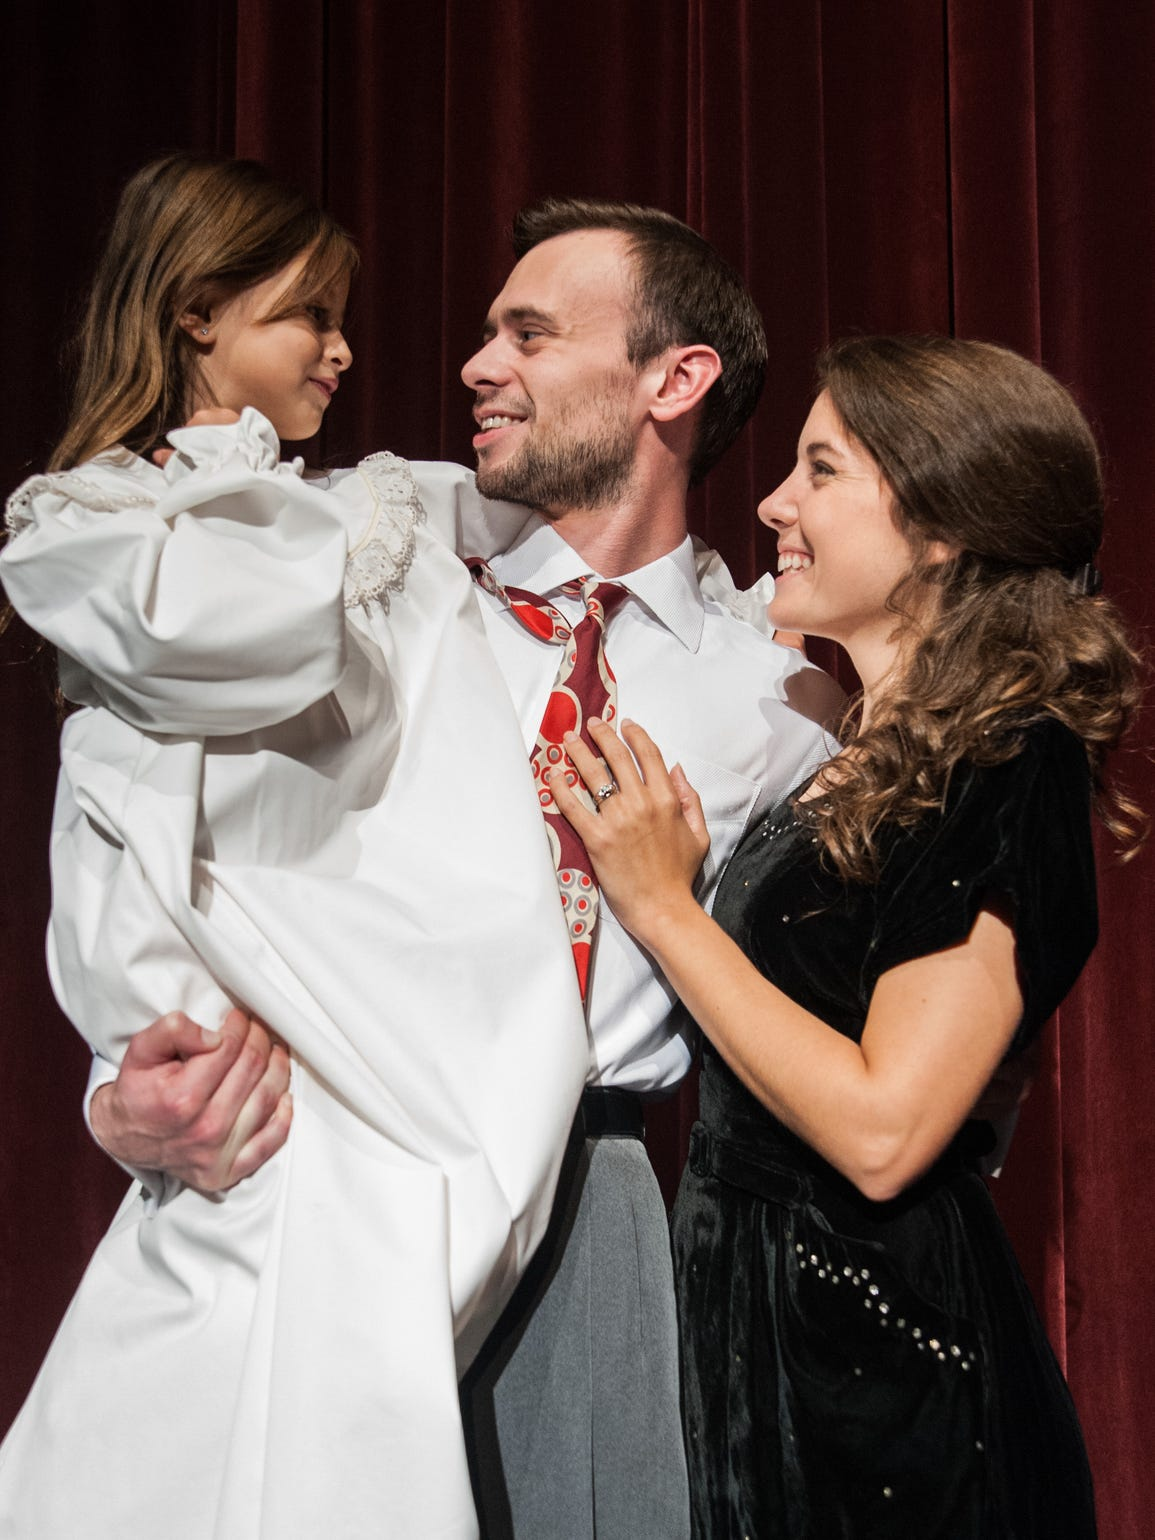 Appearing in 'It's a Wonderful Life' at Springhouse